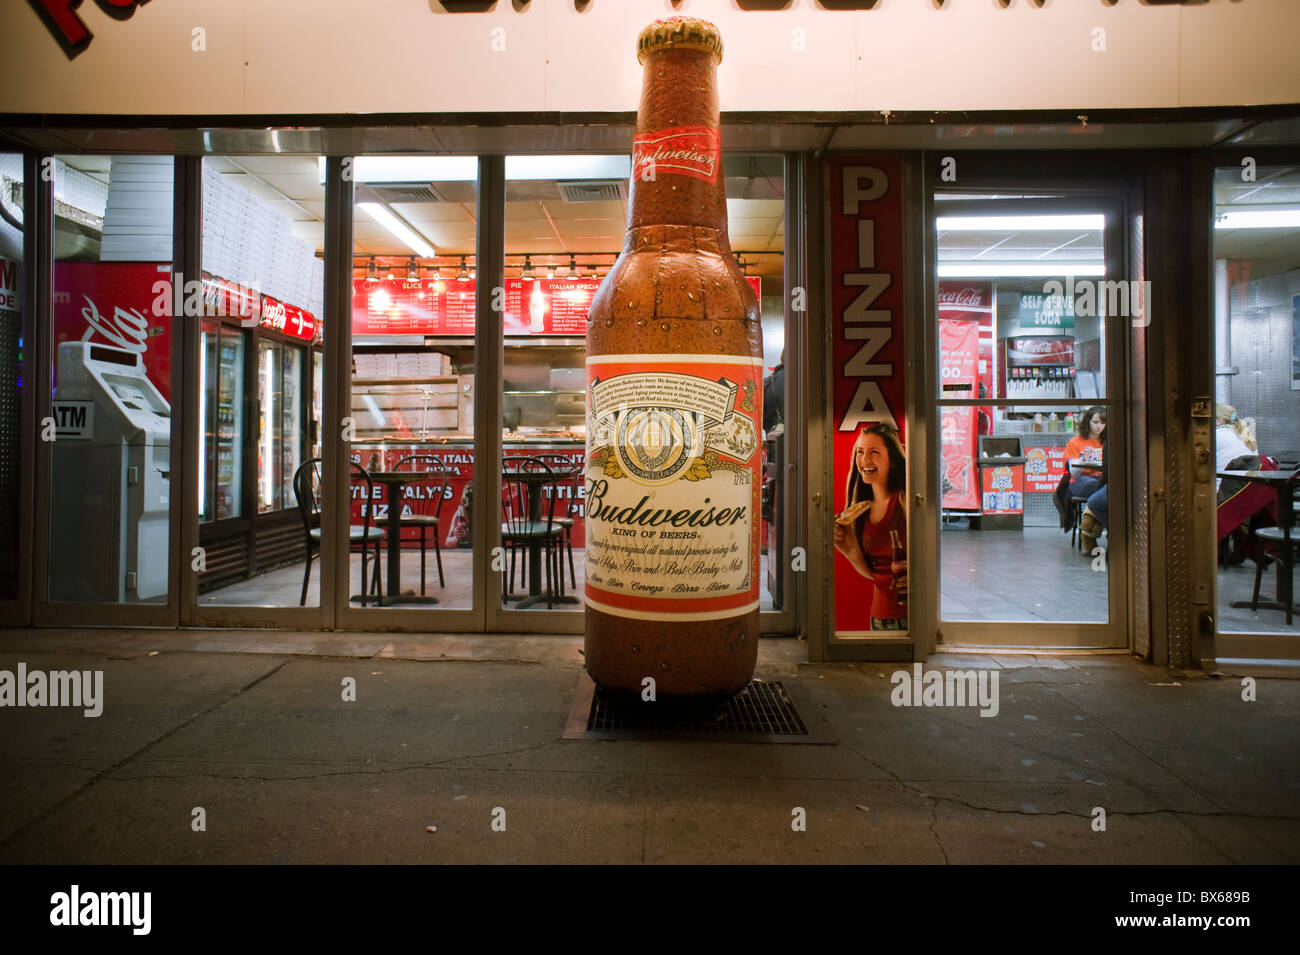 Beer Parlor Stock Photos & Beer Parlor Stock Images - Alamy